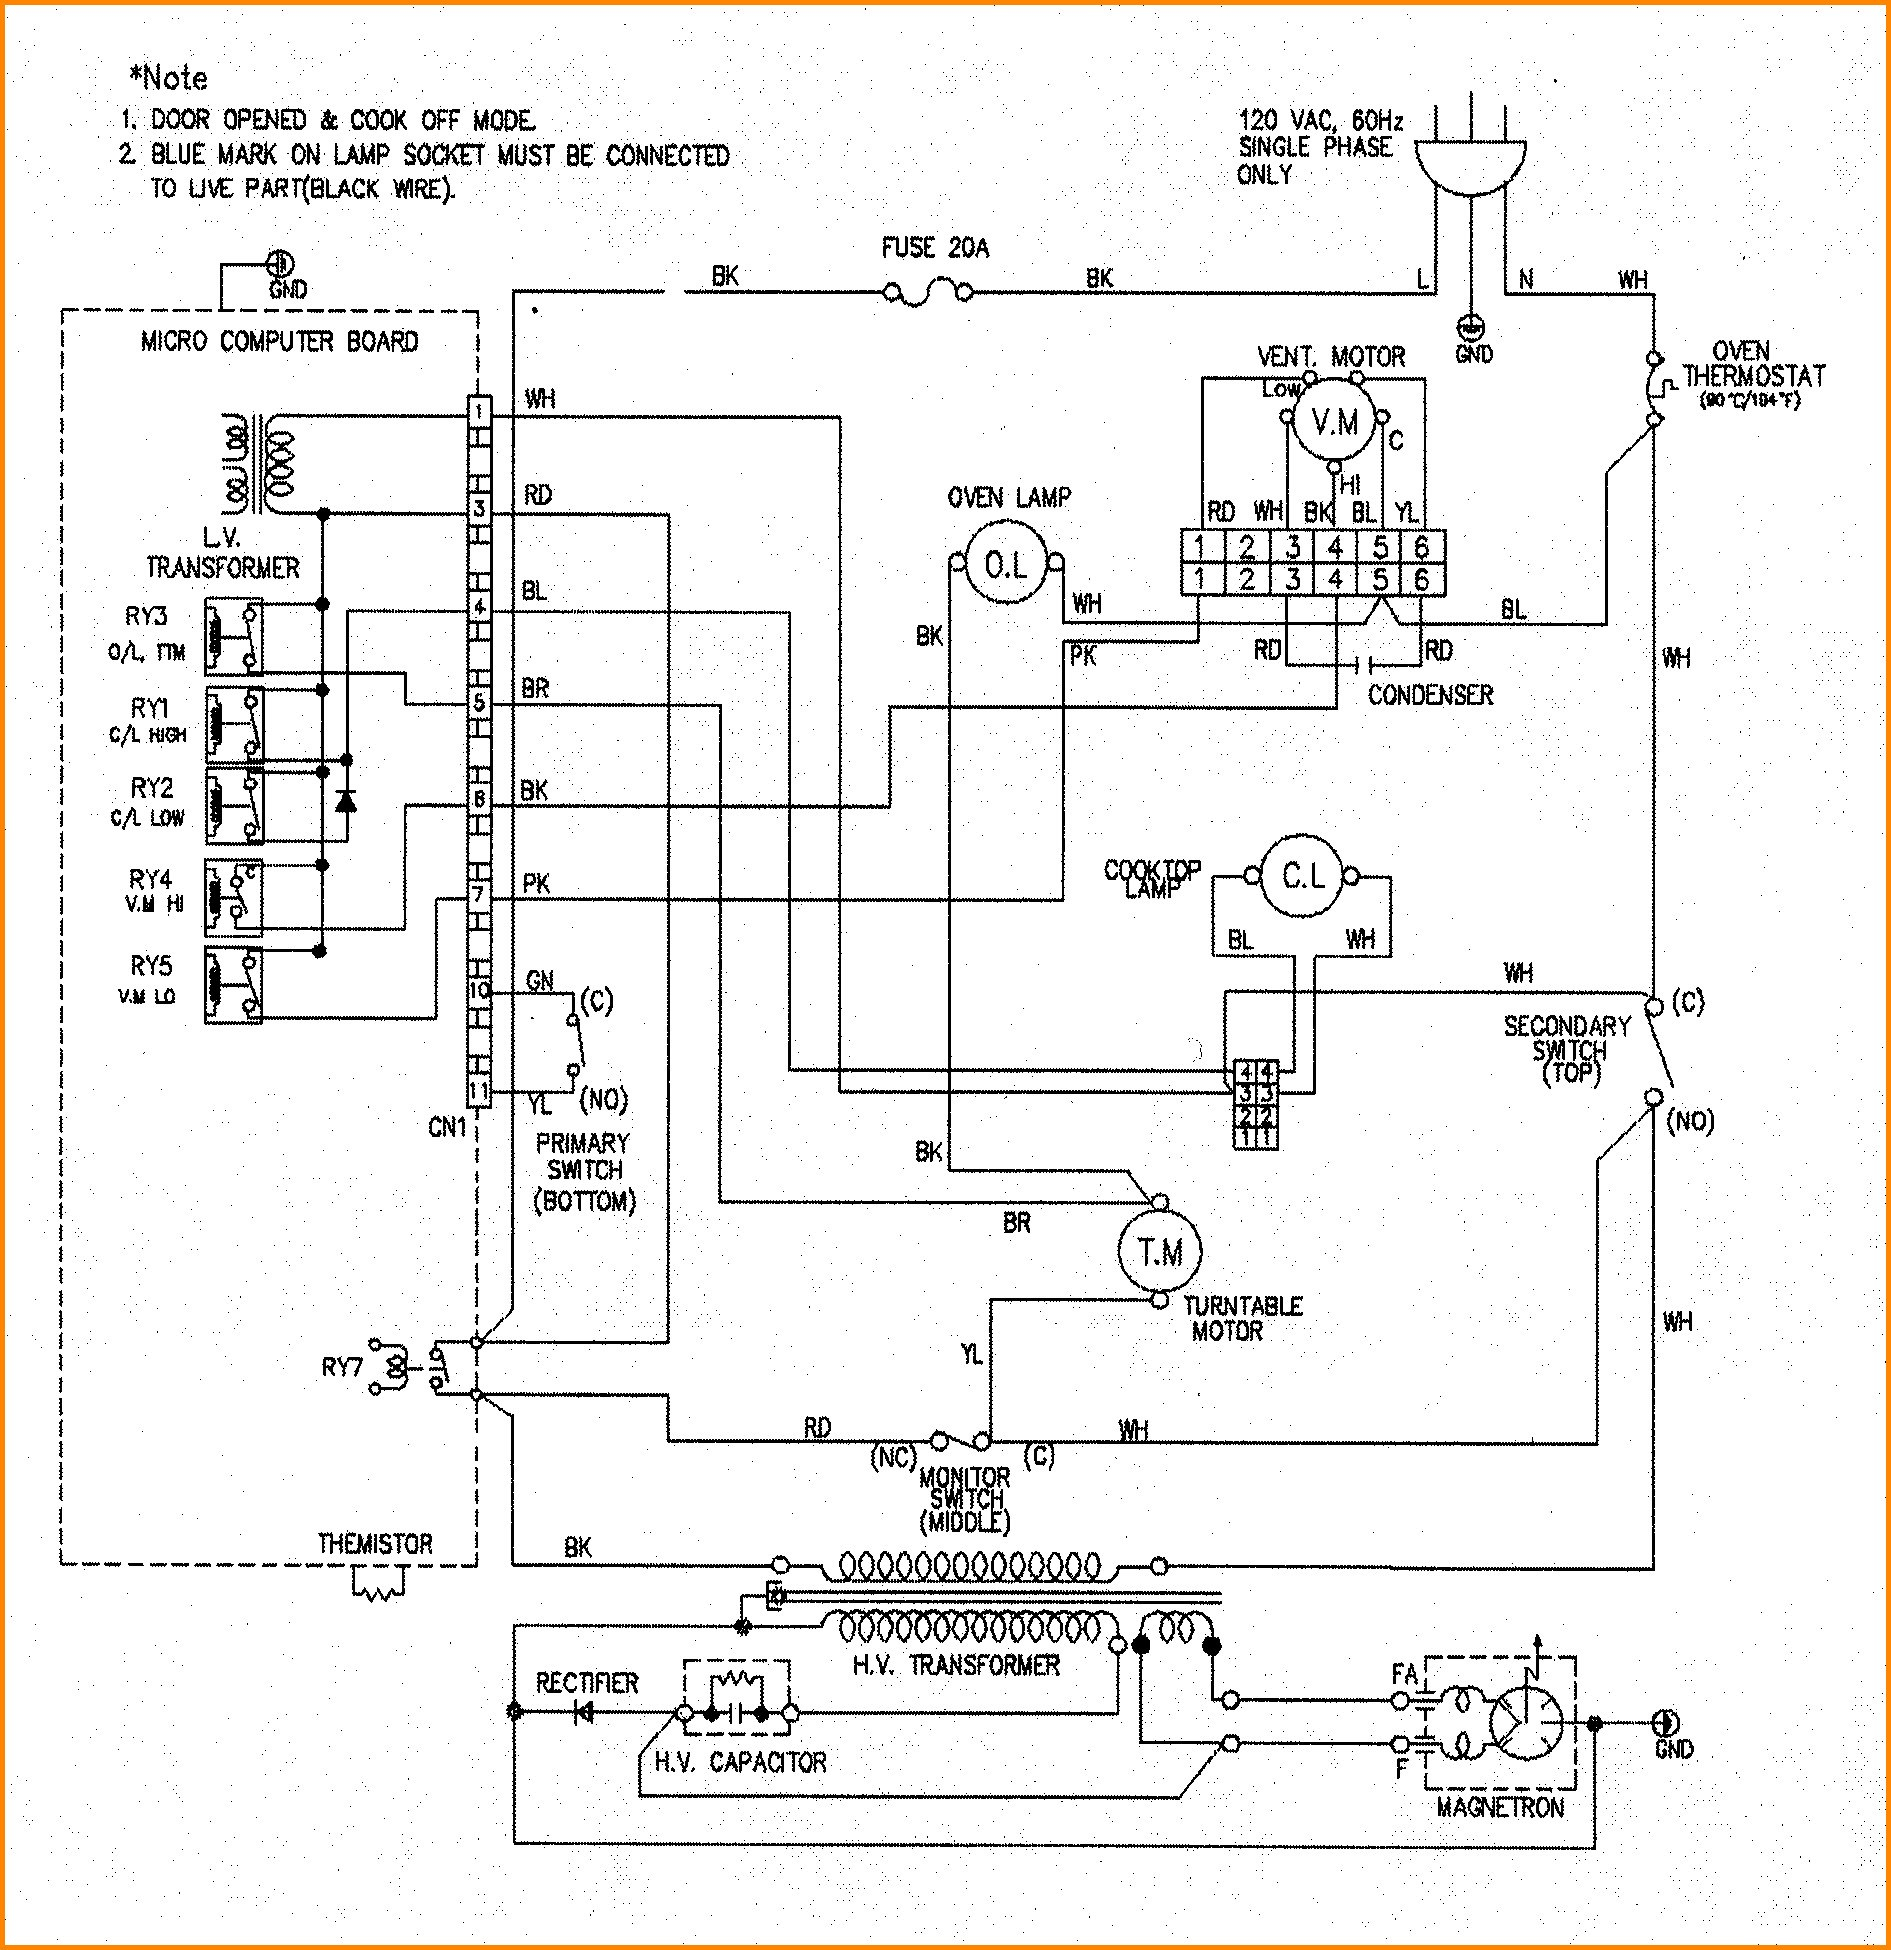 wiring diagram jb640 ge manuals for stoves wiring diagrams value wiring diagram jb640 ge manuals for stoves wiring diagram long wiring diagram jb640 ge manuals for stoves